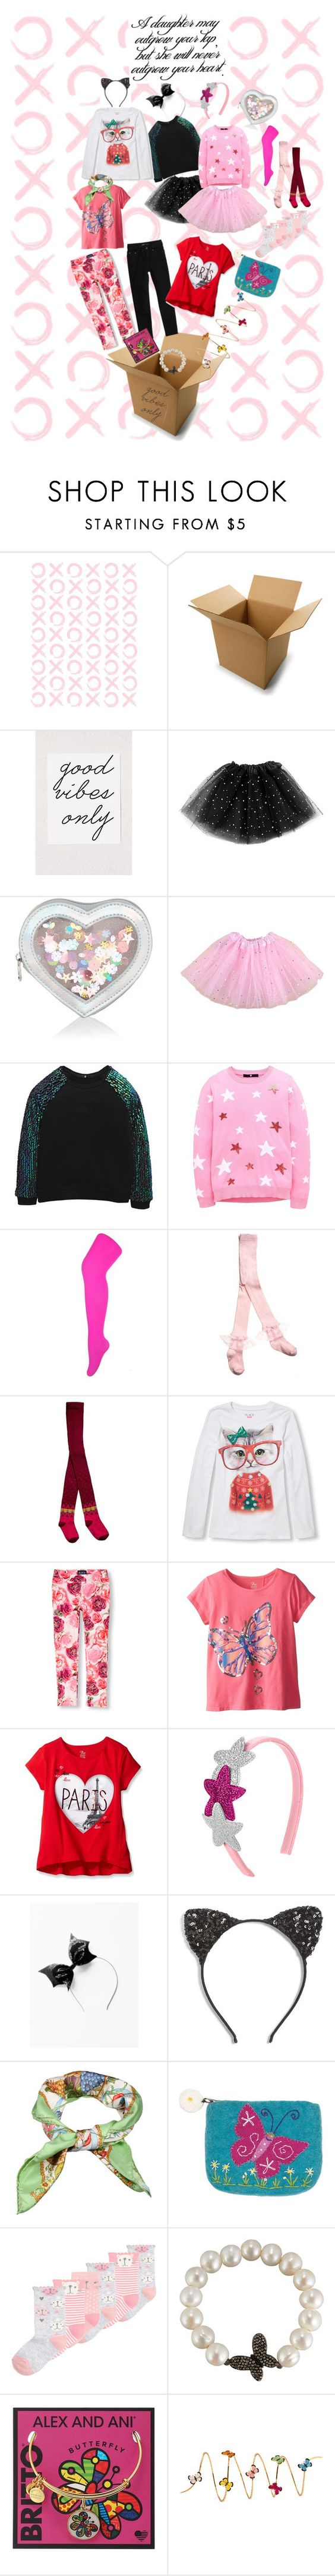 """""""Little Girls November Fashion Kit"""" by violajunerose ❤ liked on Polyvore featuring Urban Outfitters, Accessorize, Catimini, Levi's, The Children's Place, Cara, Gucci, Bavna, Alex and Ani and Christina Debs"""